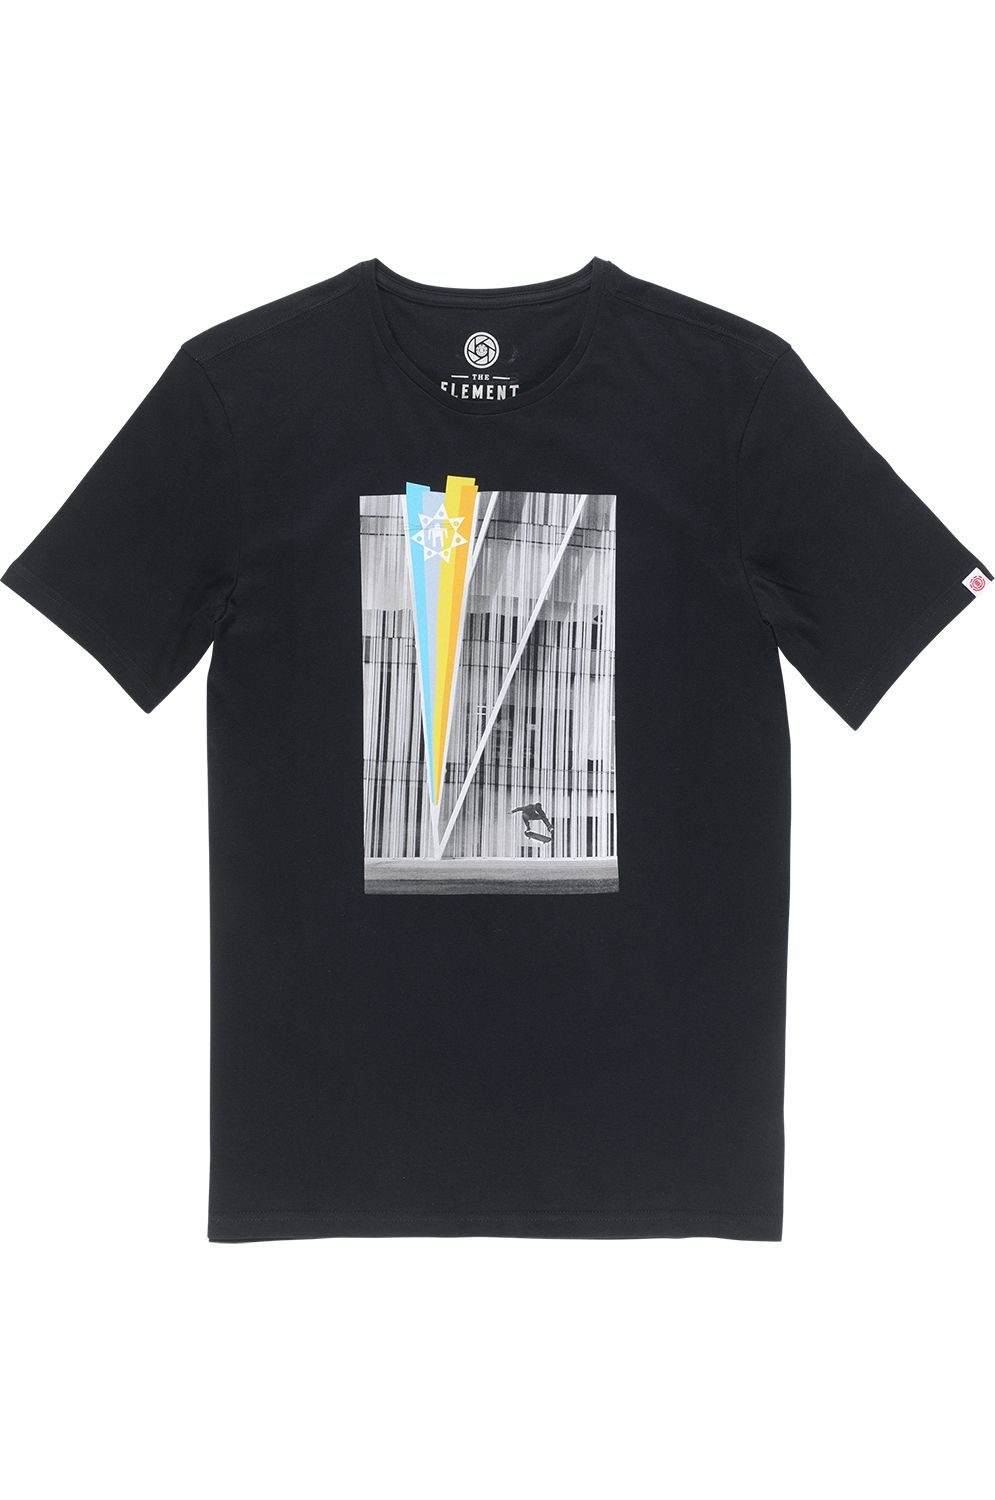 T-Shirt Element SASCHA ELEMENT PERSPECTIVE Flint Black